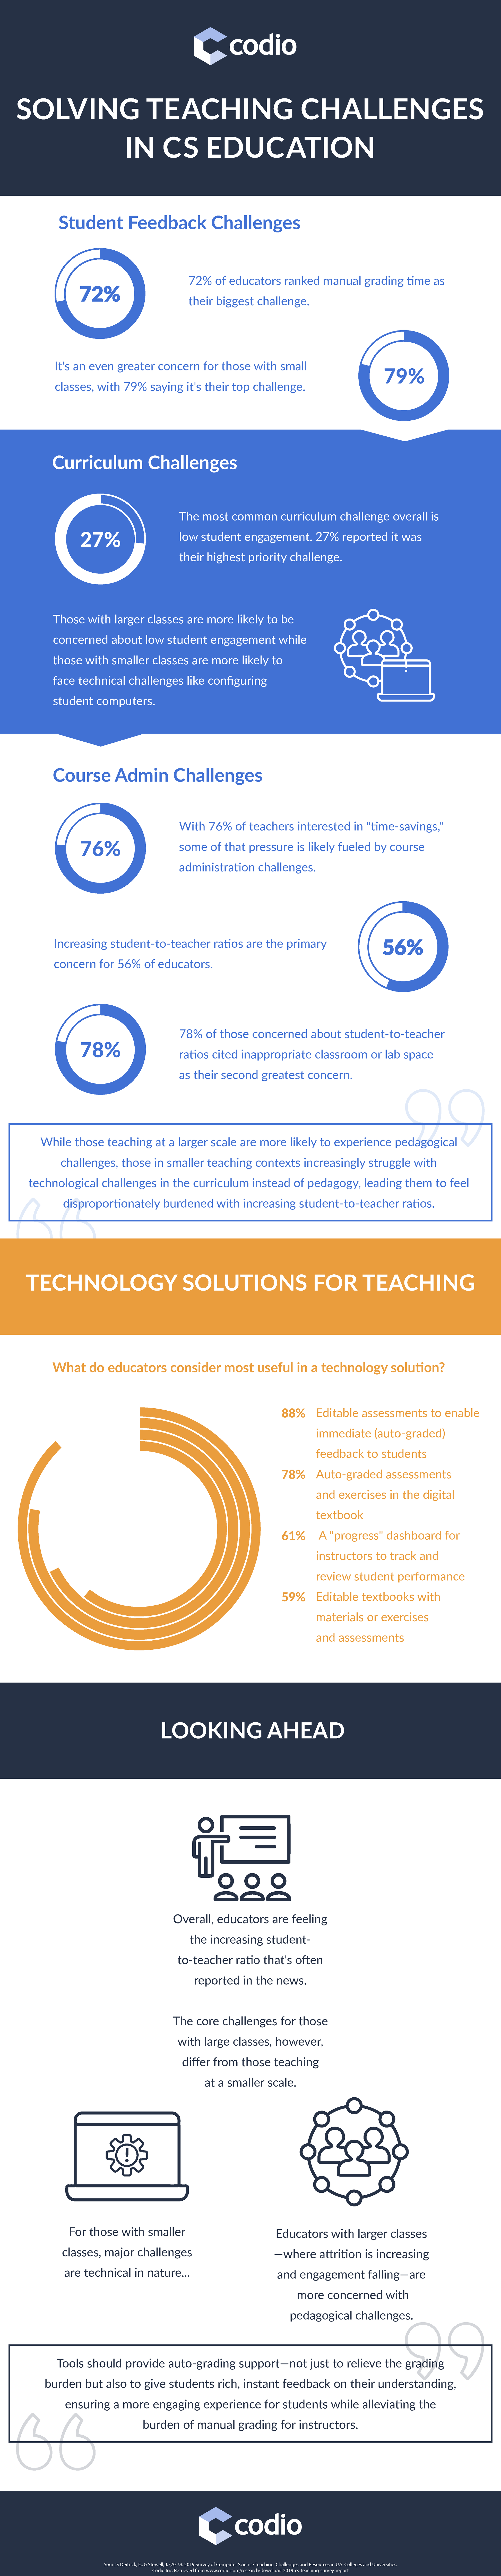 Codio Computer Science Teaching Infographic